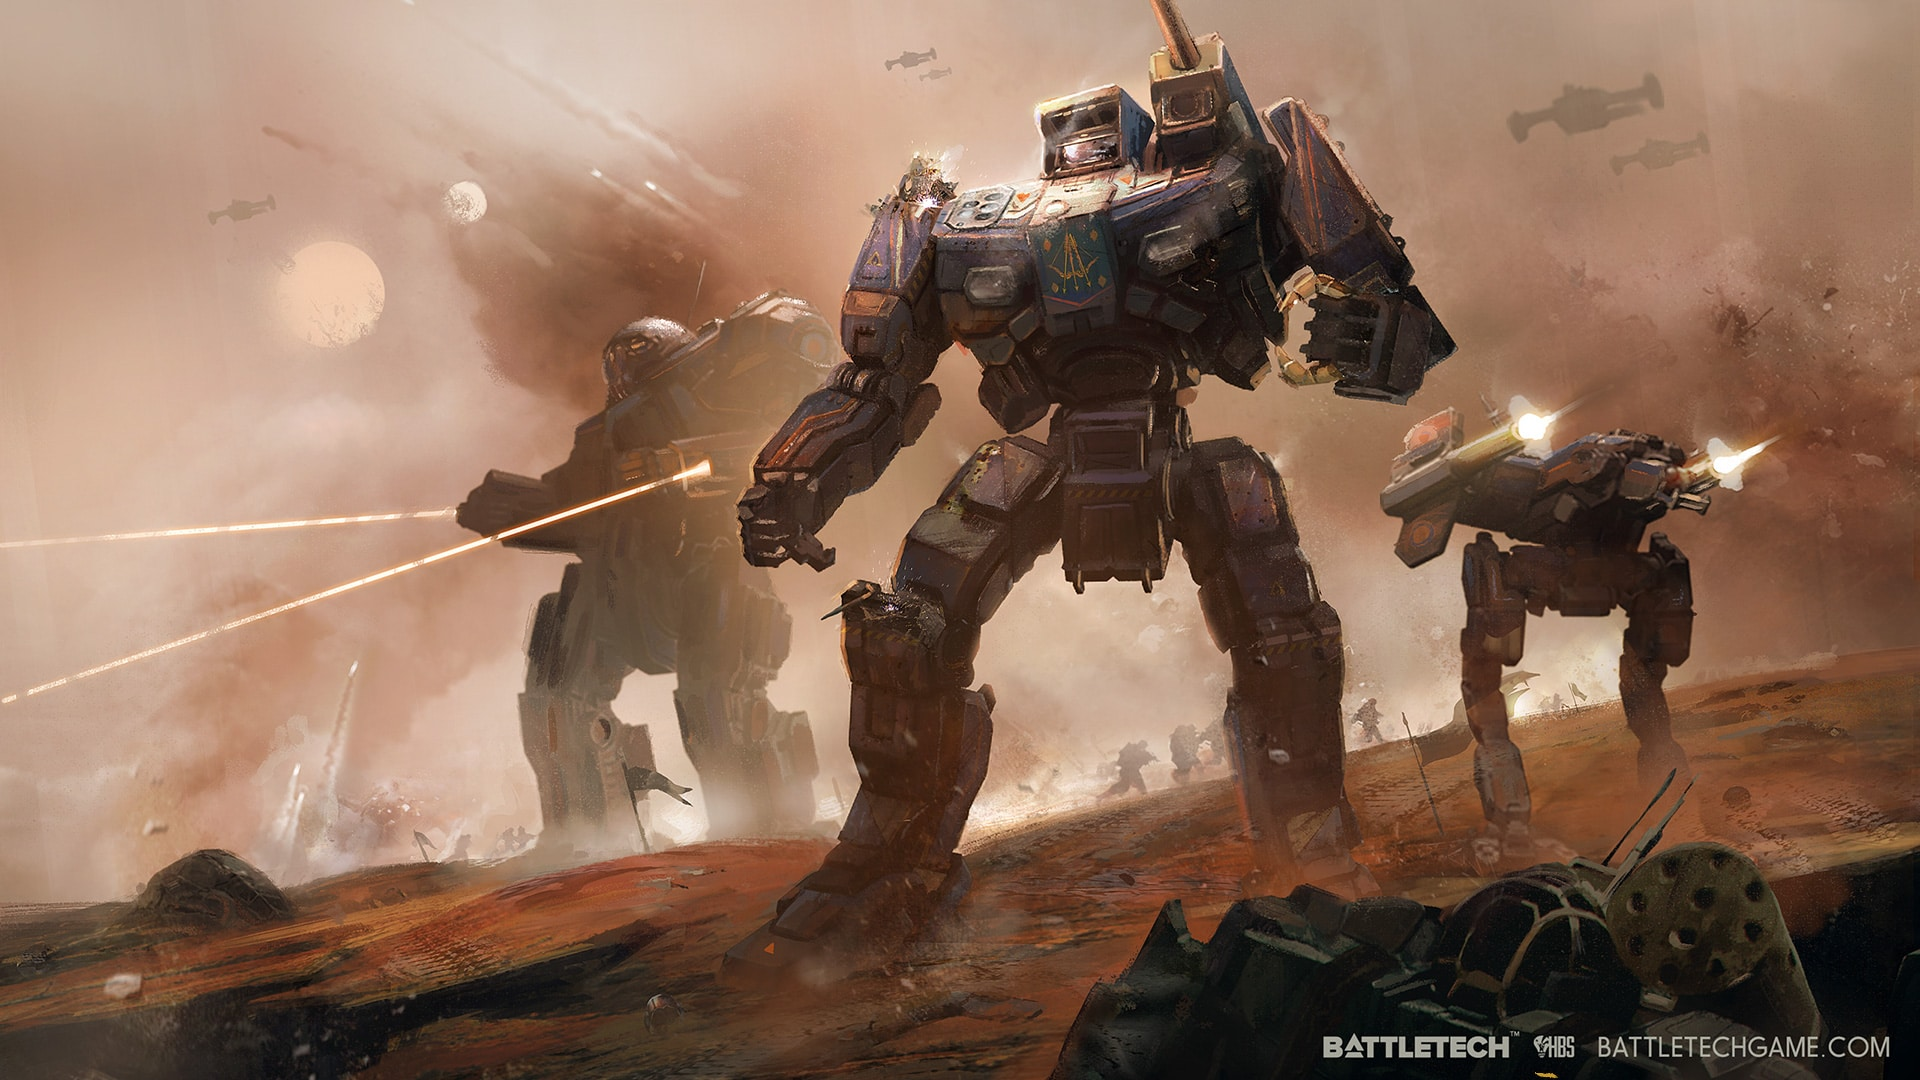 battletech gameplay trailer